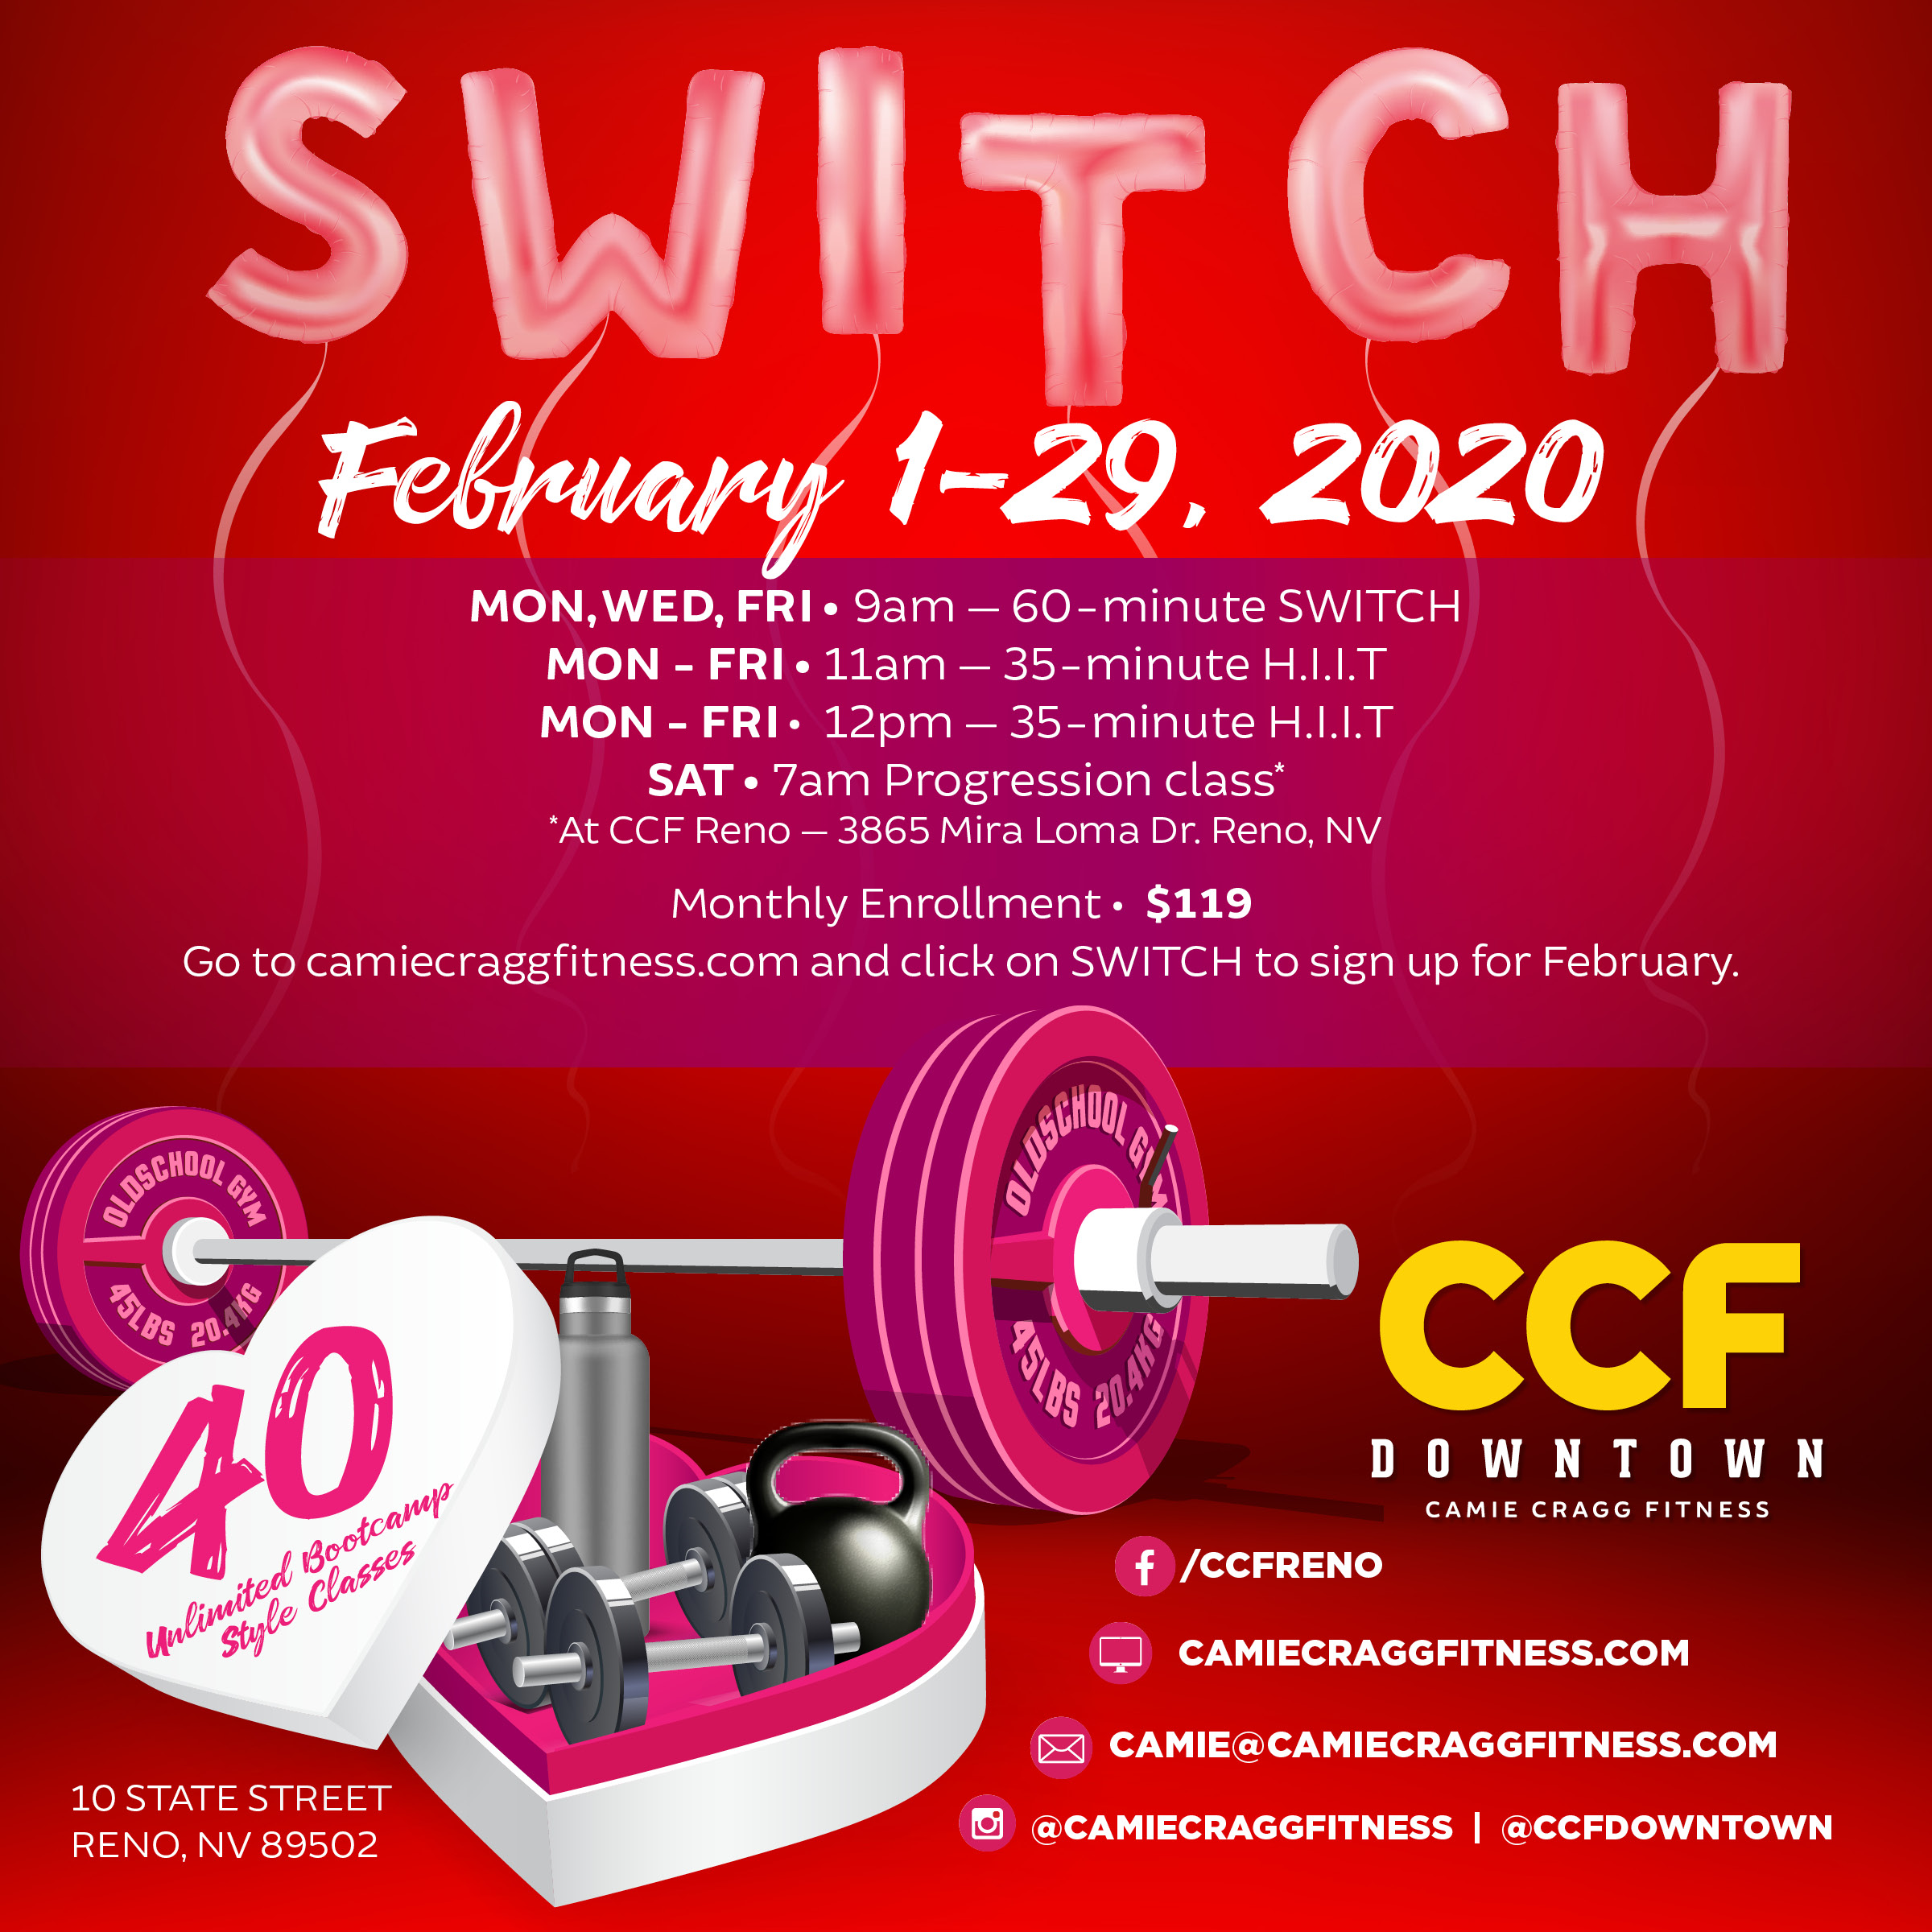 February Downtown S.W.I.T.C.H. Feauted